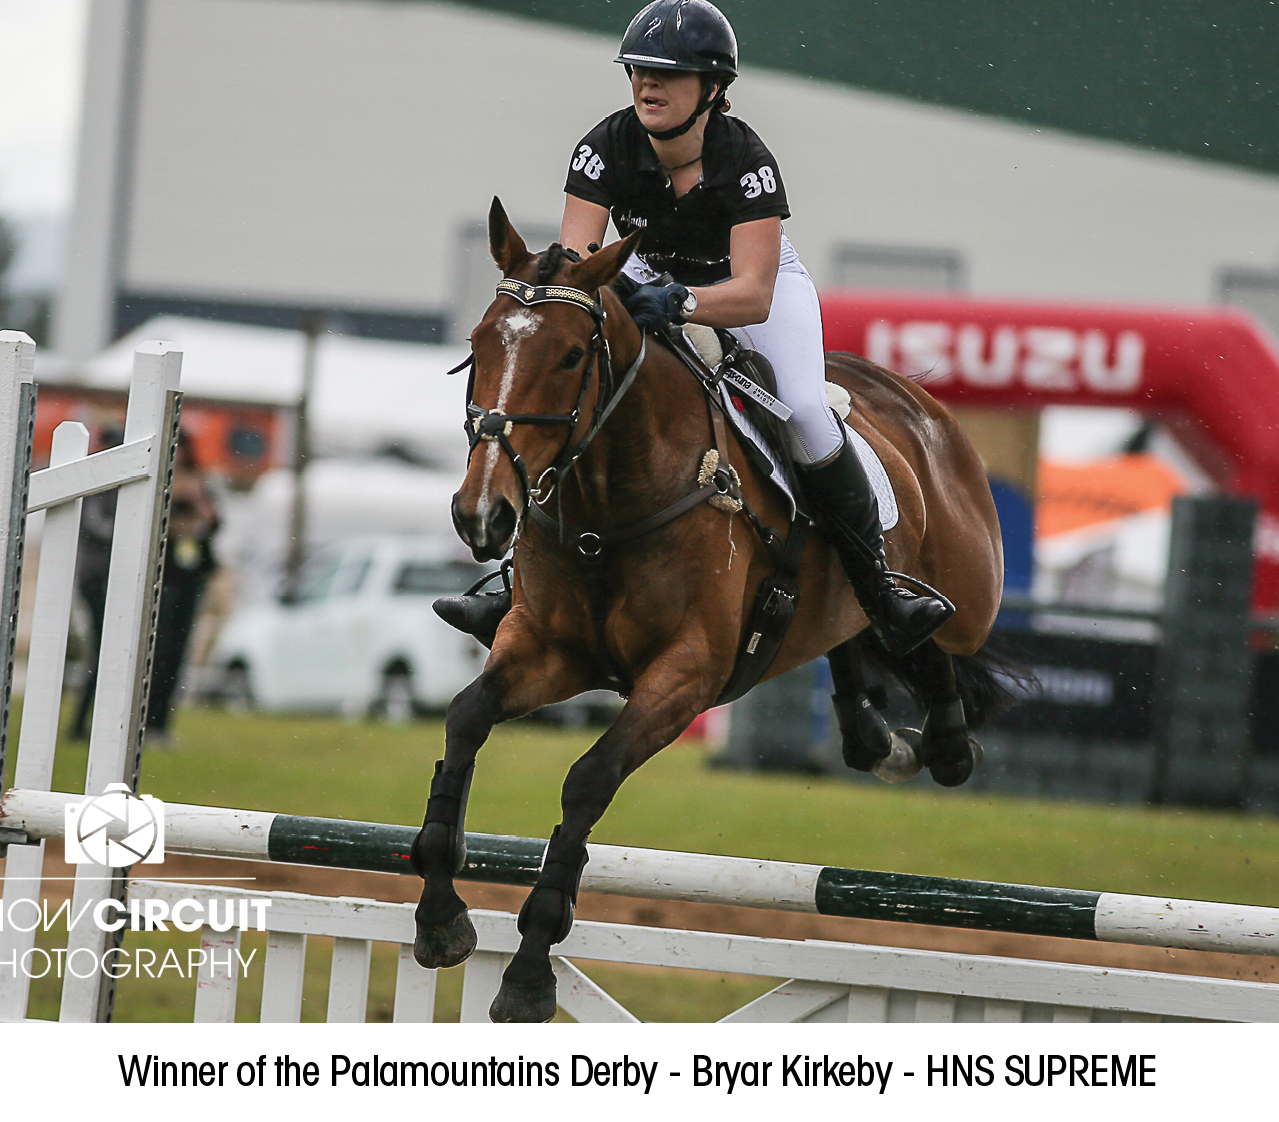 Winner of the Palamountains Derby - Bryar Kirkeby - HNS SUPREME